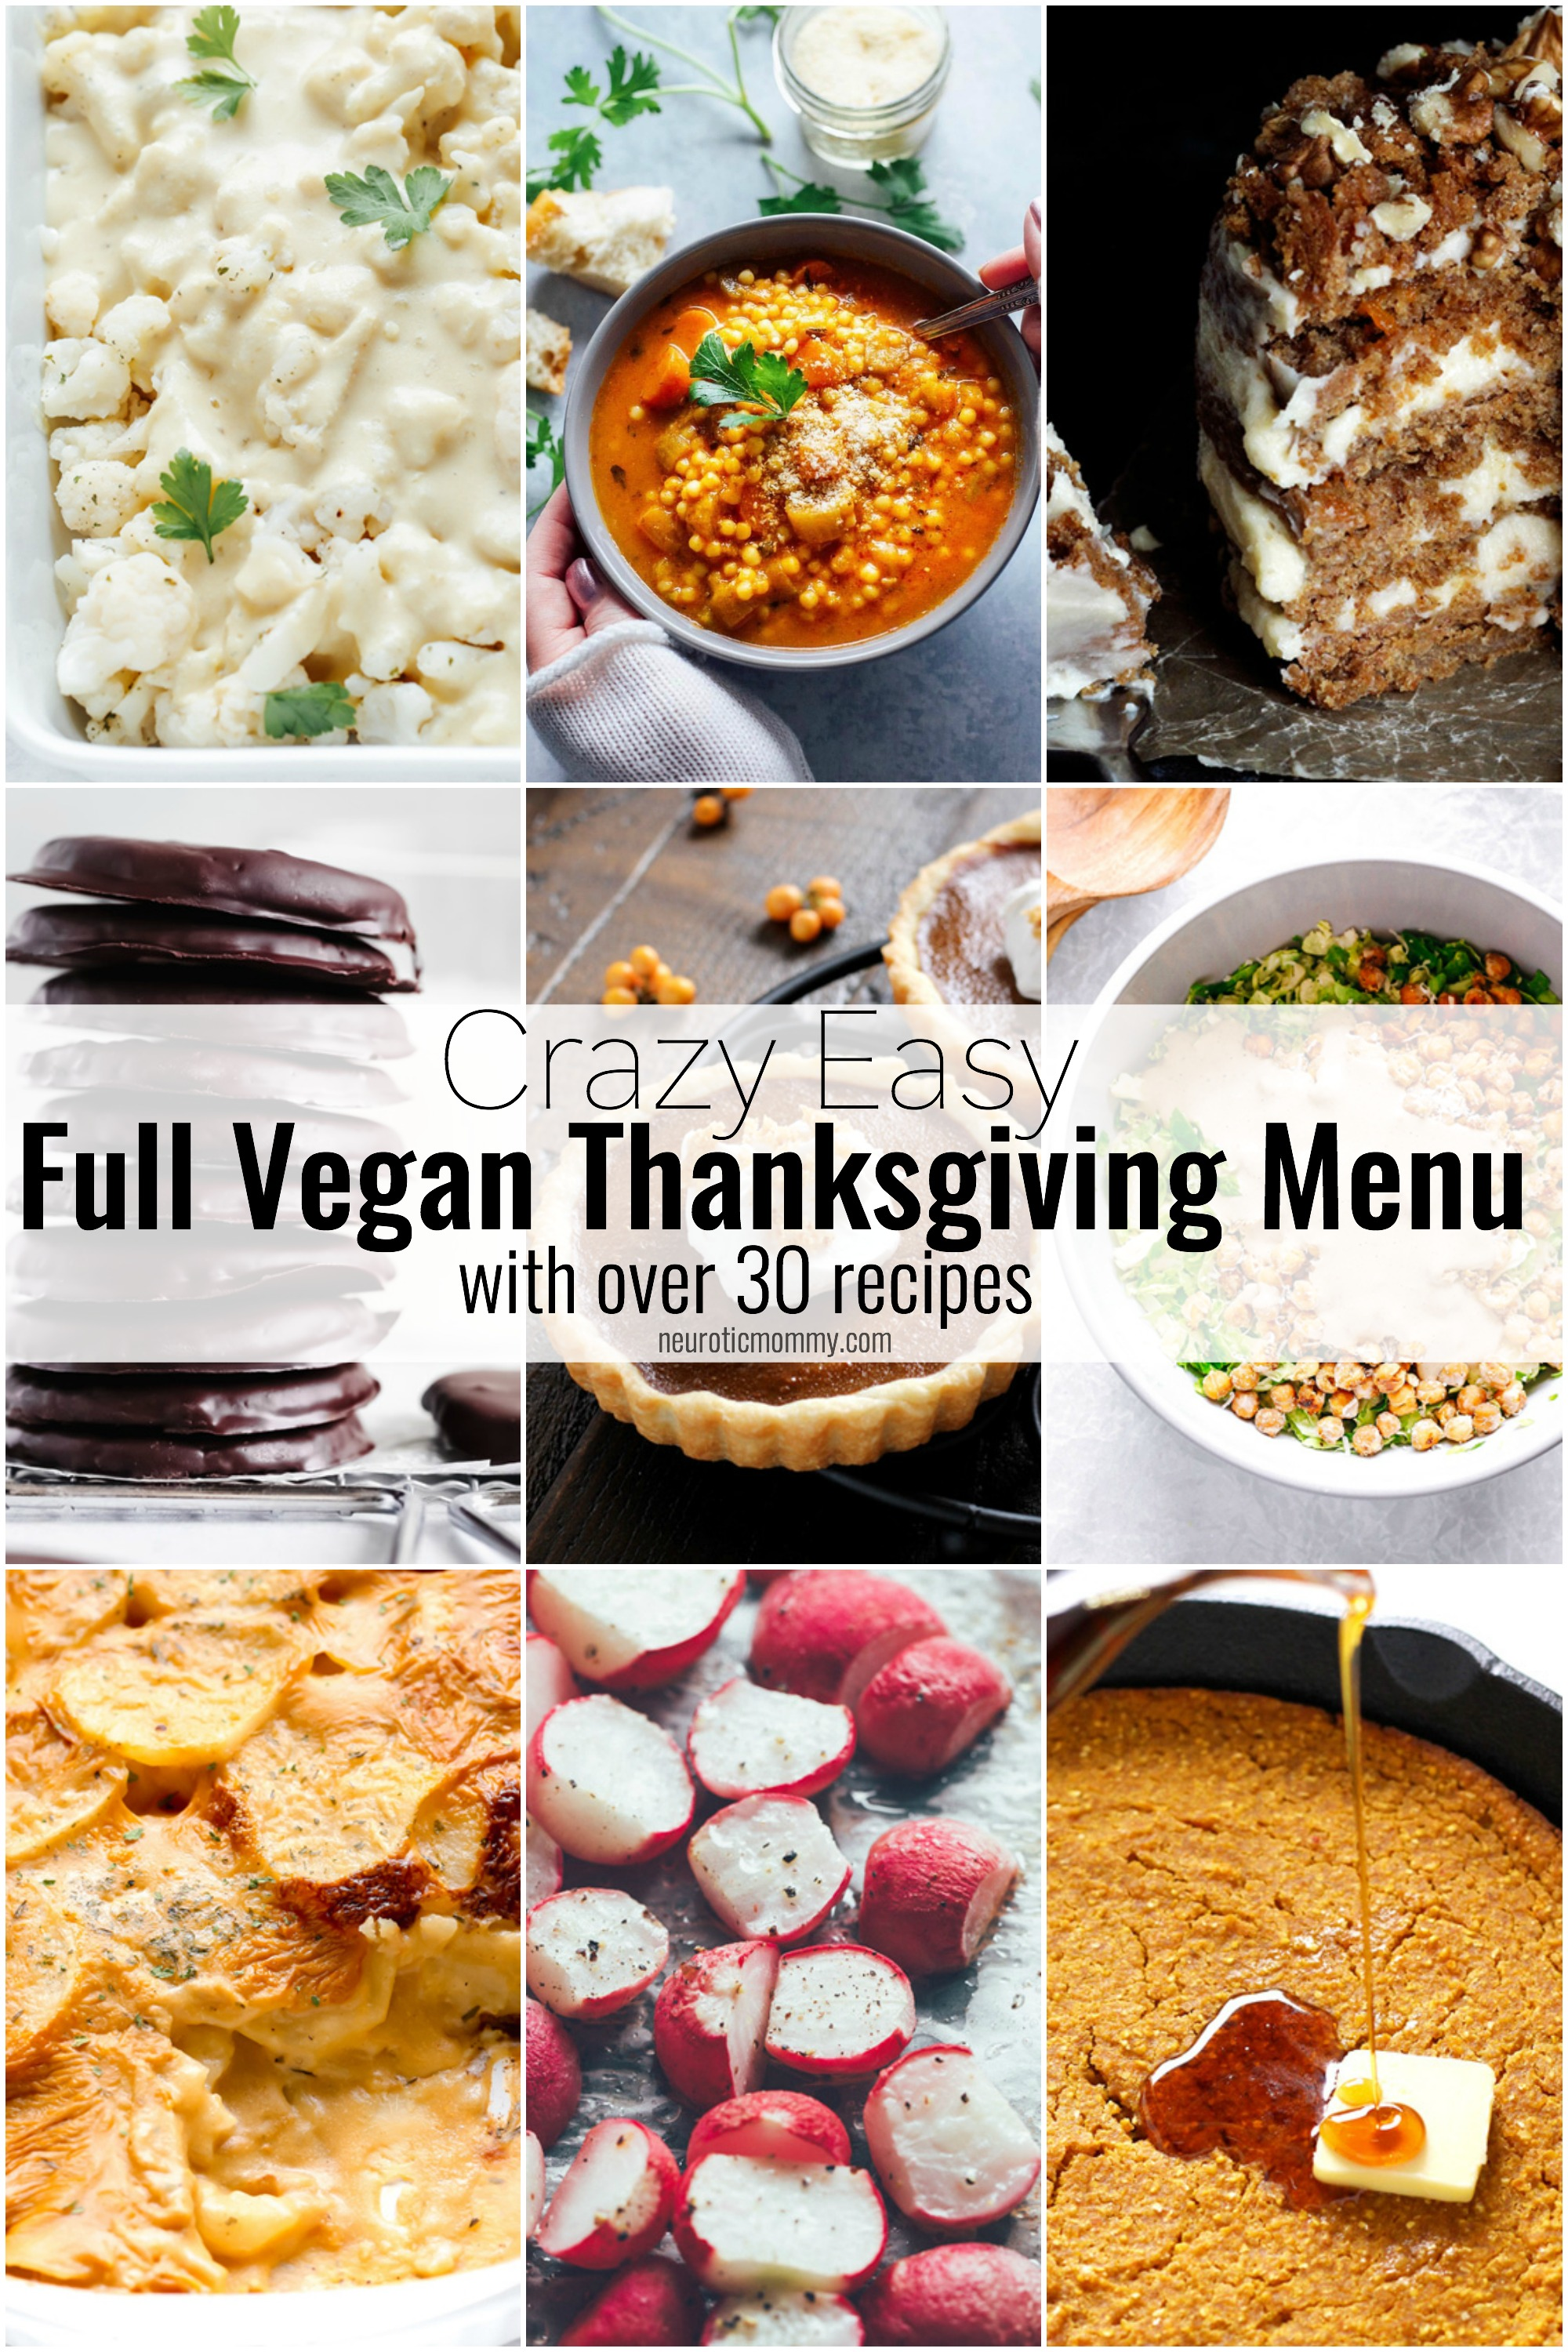 Crazy Easy Vegan Thanksgiving Menu - full with starters, mains, entrees, desserts, beverages and more! You'll be fully covered with this vegan menu! NeuroticMommy.com #veganthanksgiving